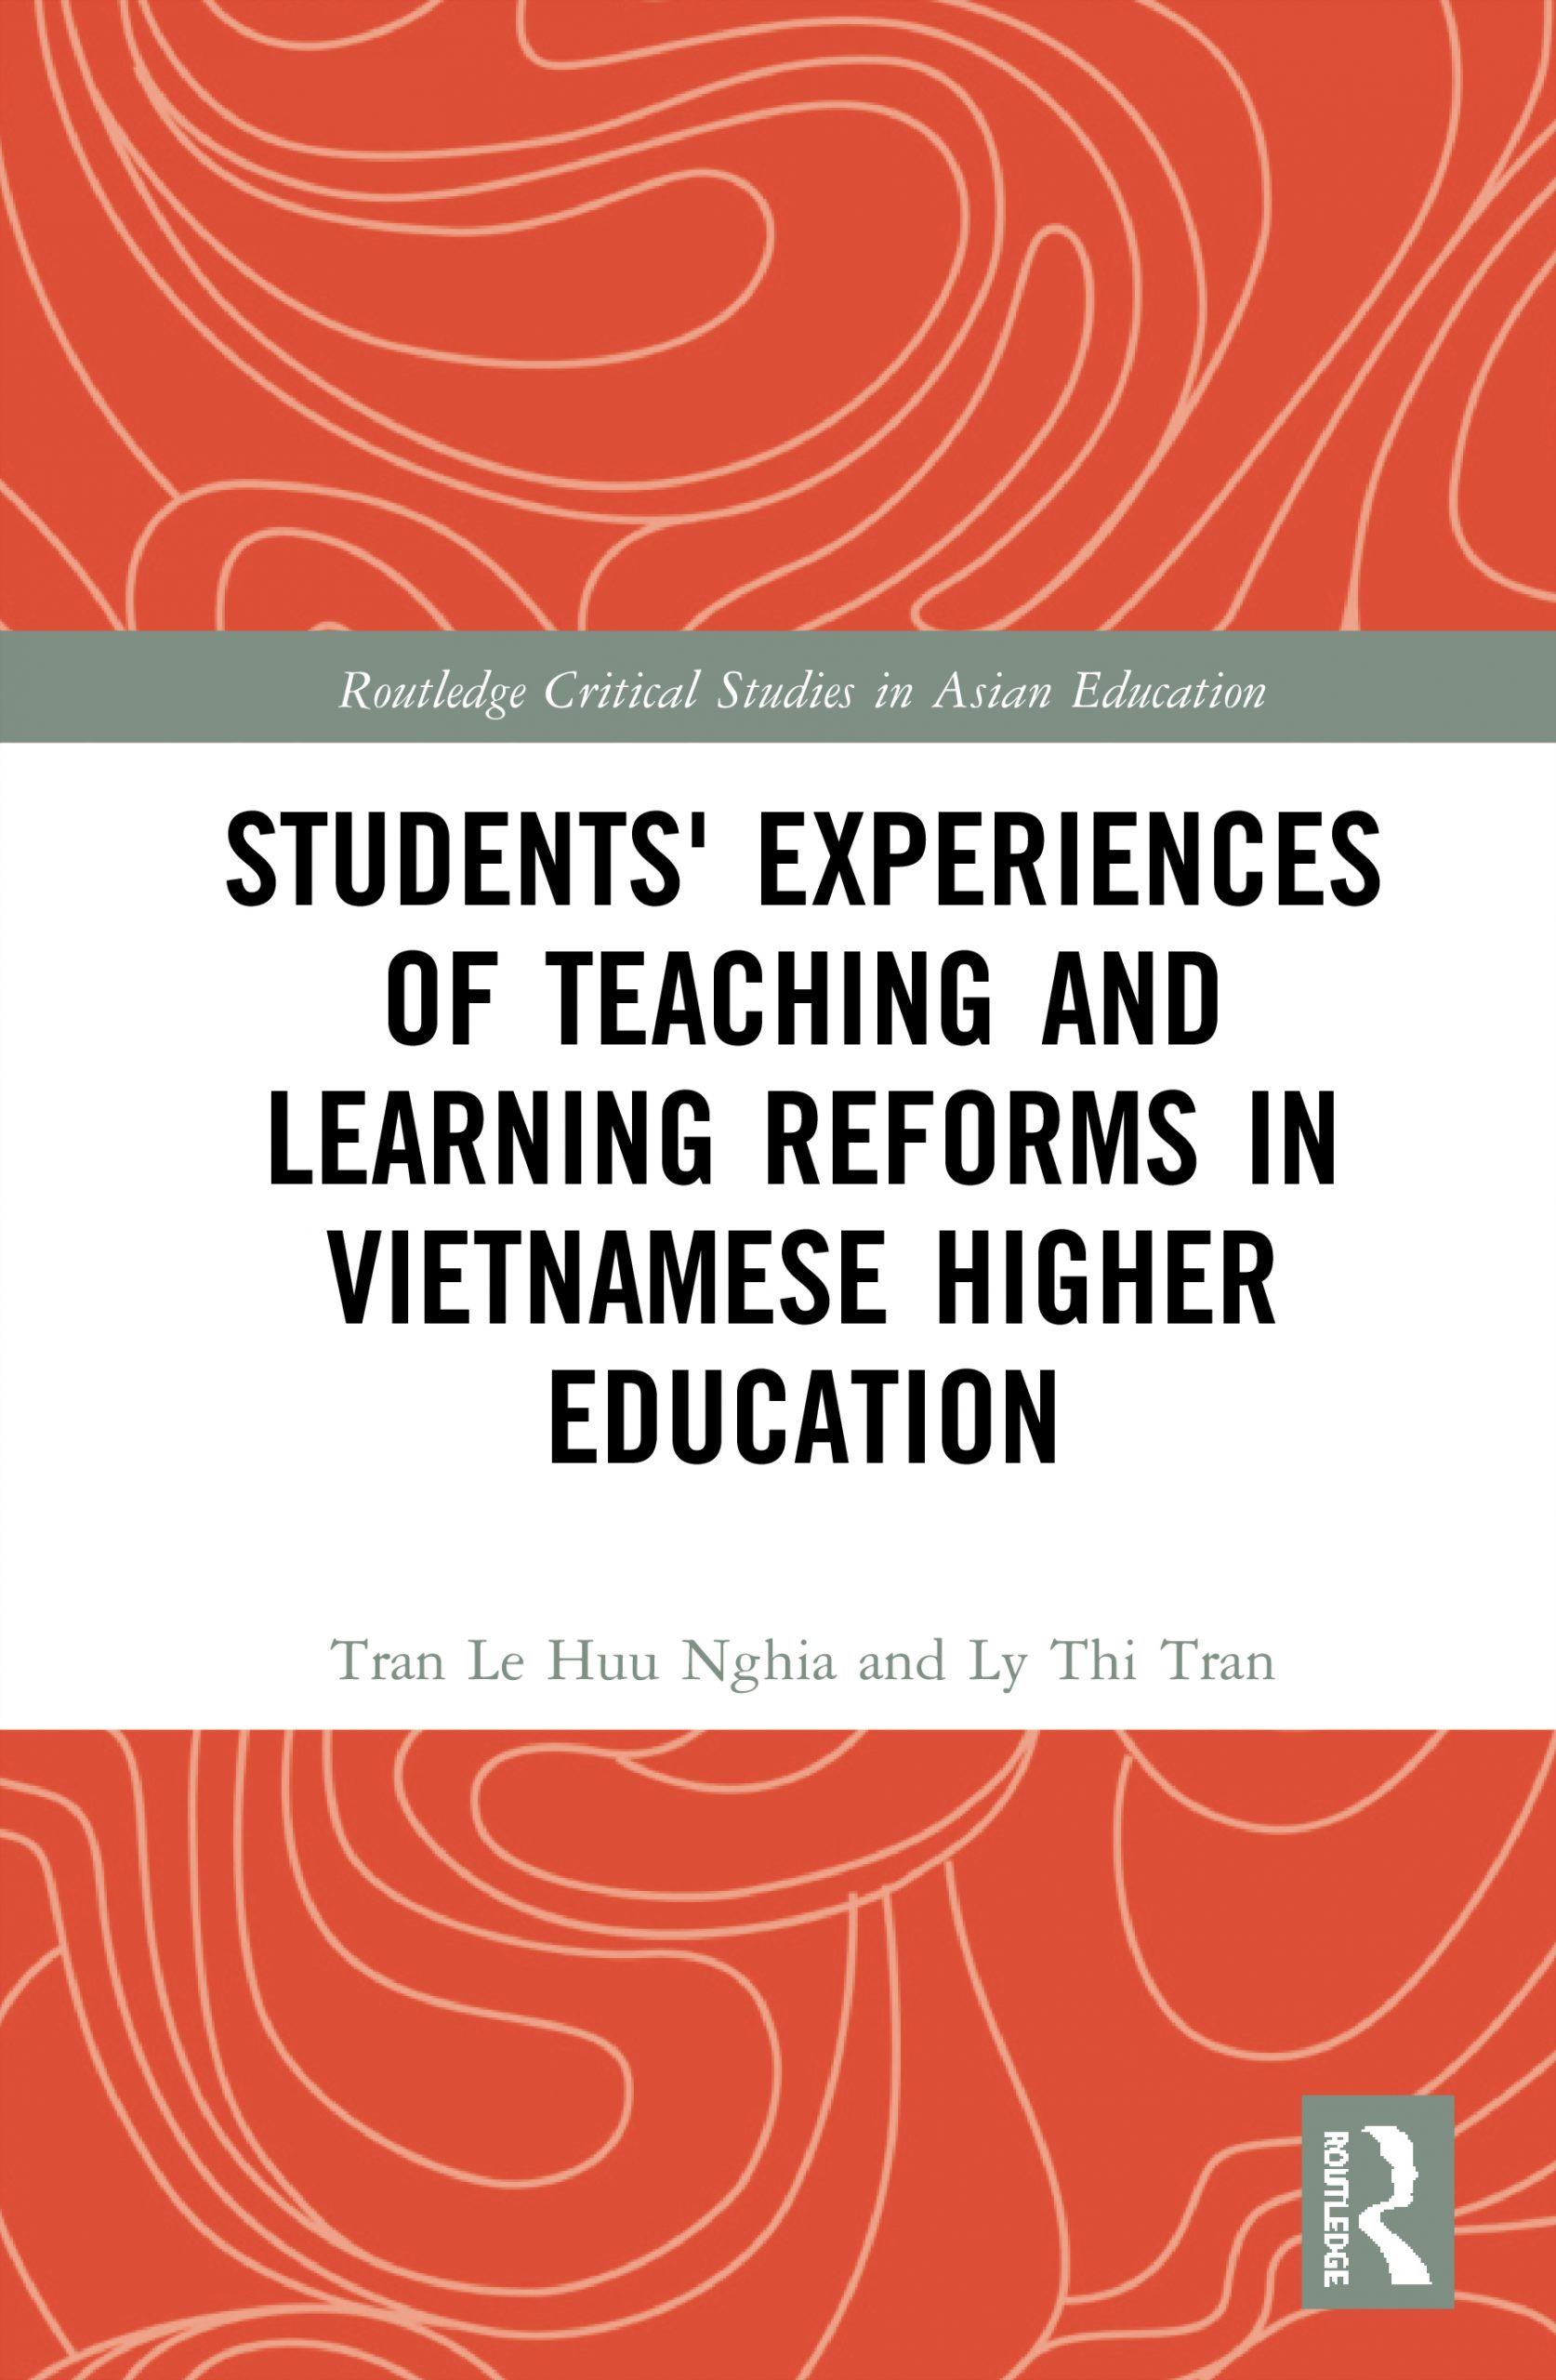 Routledge_Students Experiences Teaching Learning Reforms Vietnamese Higher Education